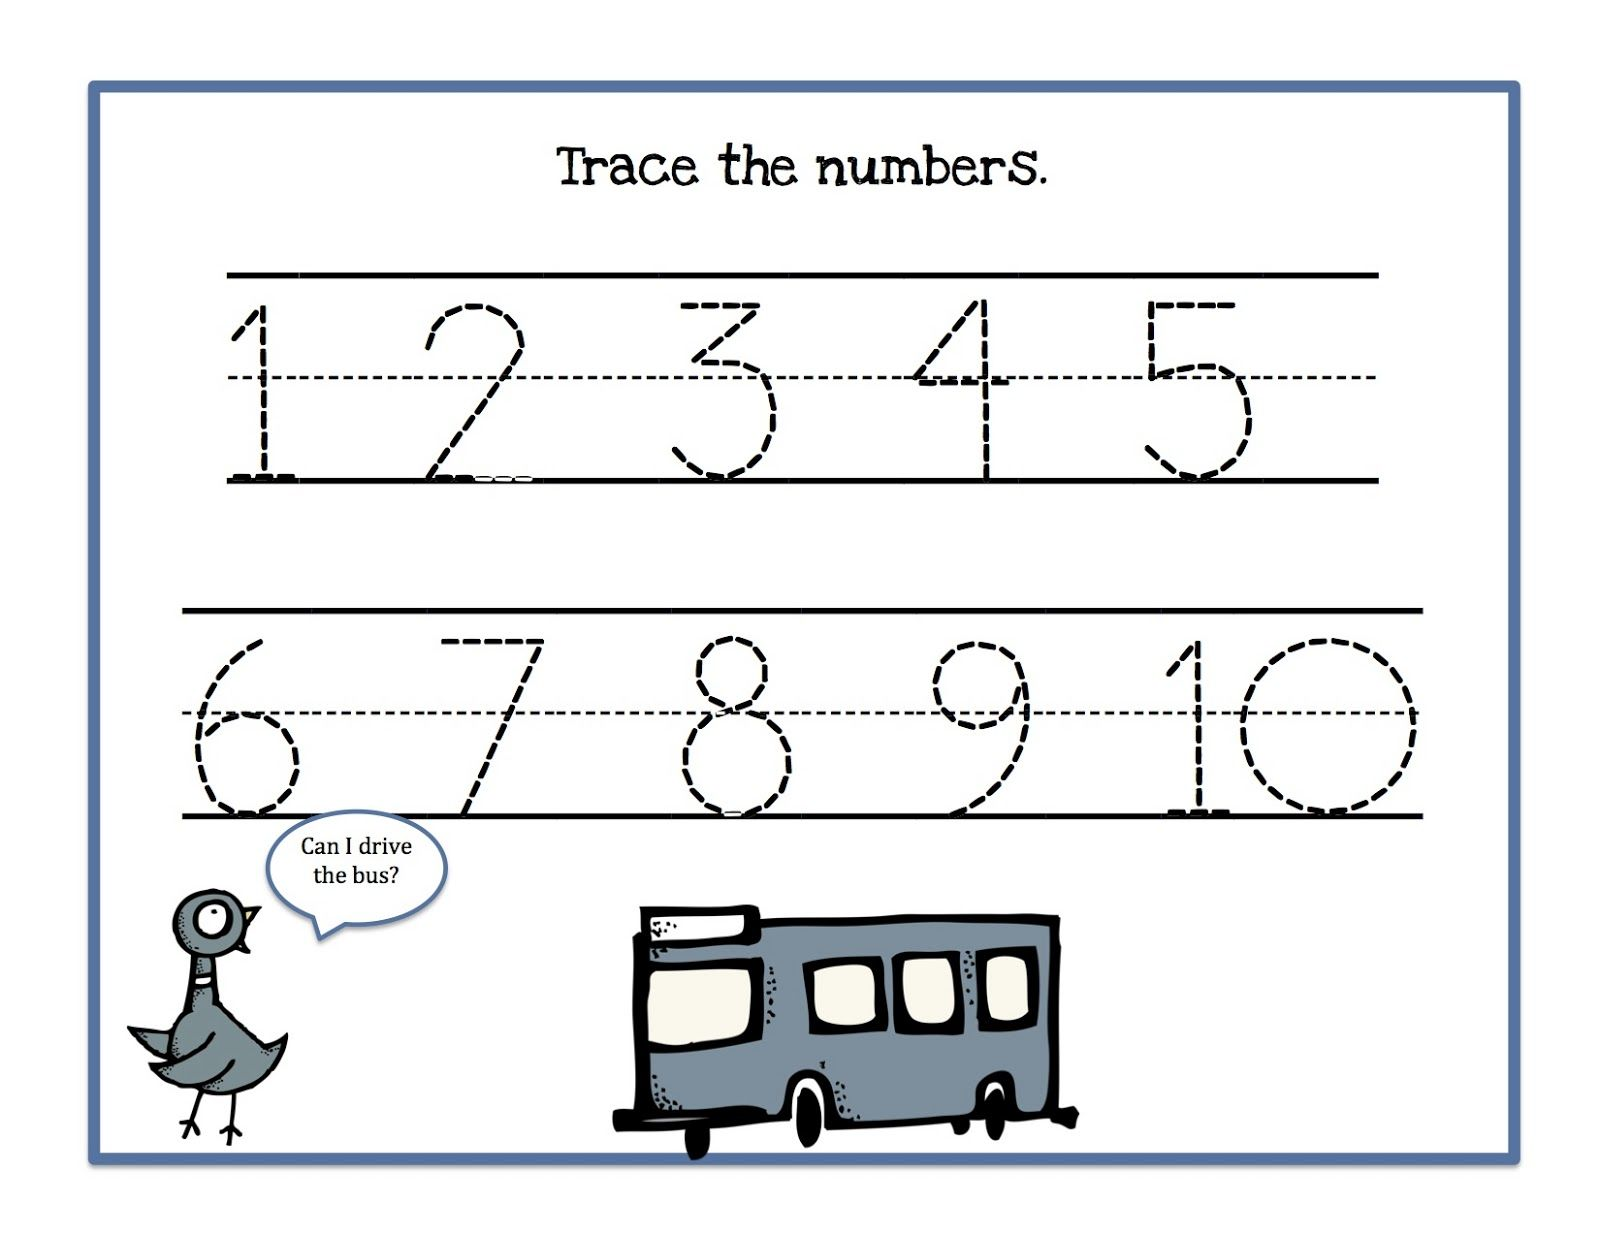 Traceable Numbers 1-10 For Kindergarten Kids. : Kiddo ...